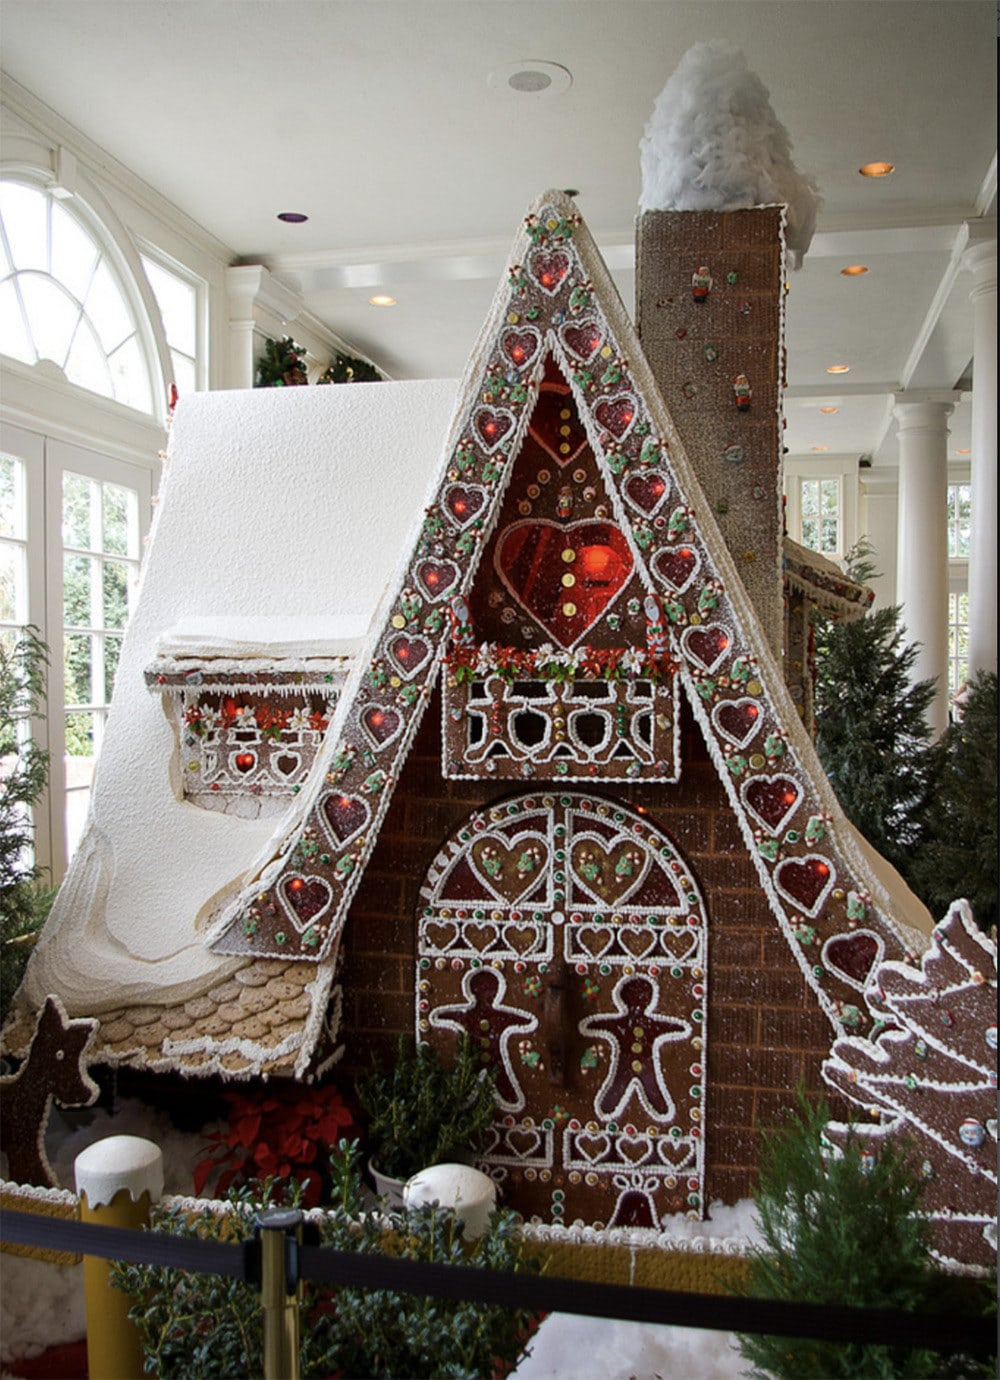 lovely A-frame gingerbread house with amazing piped doors and sugar glass windows